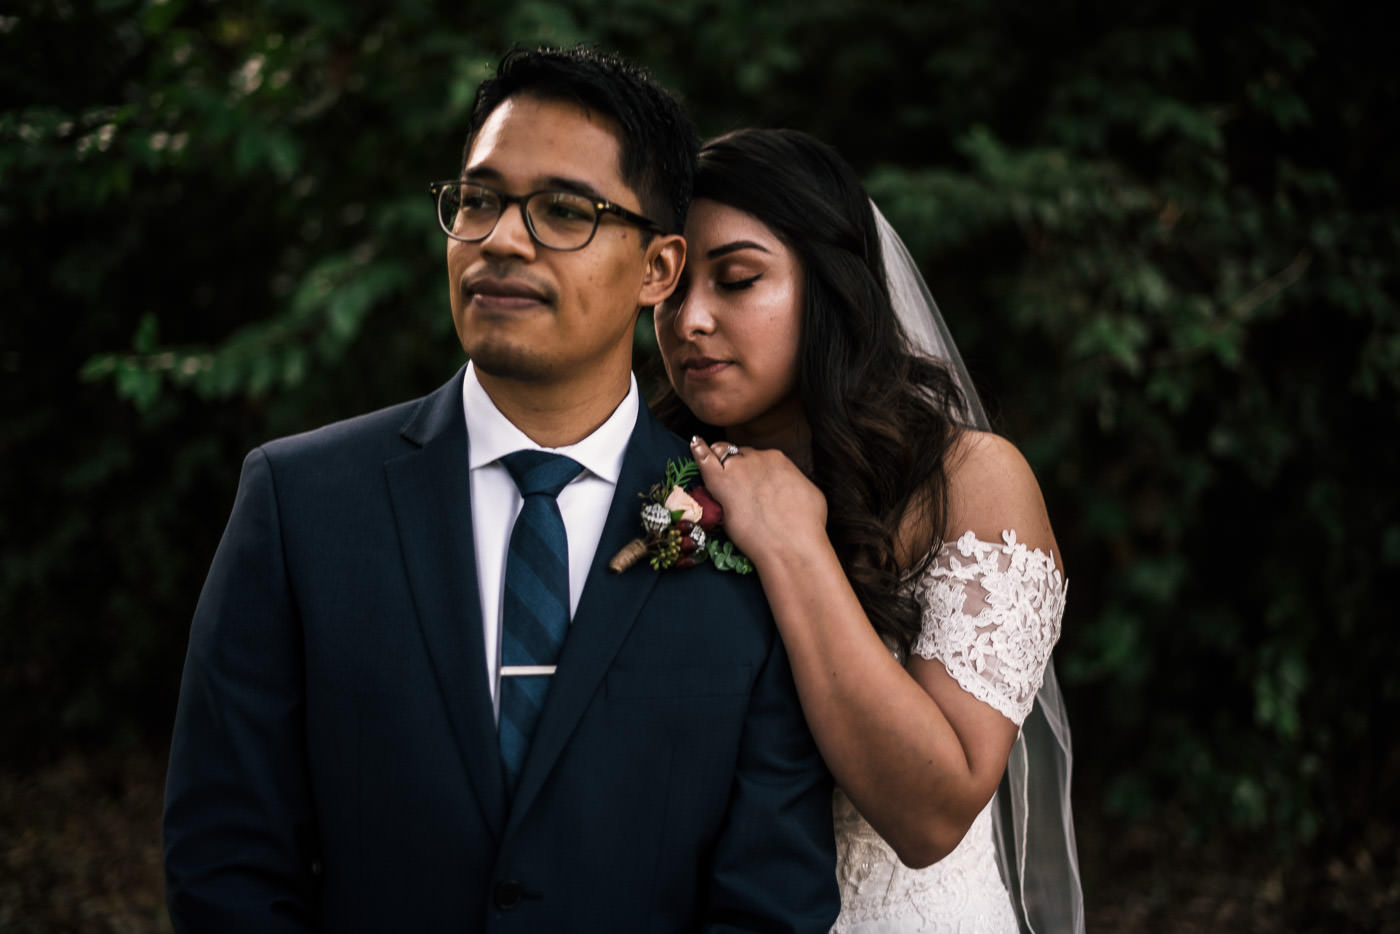 Couple takes beautiful portraits with their photographer at this Knollwood Country club wedding in Granada Hills.